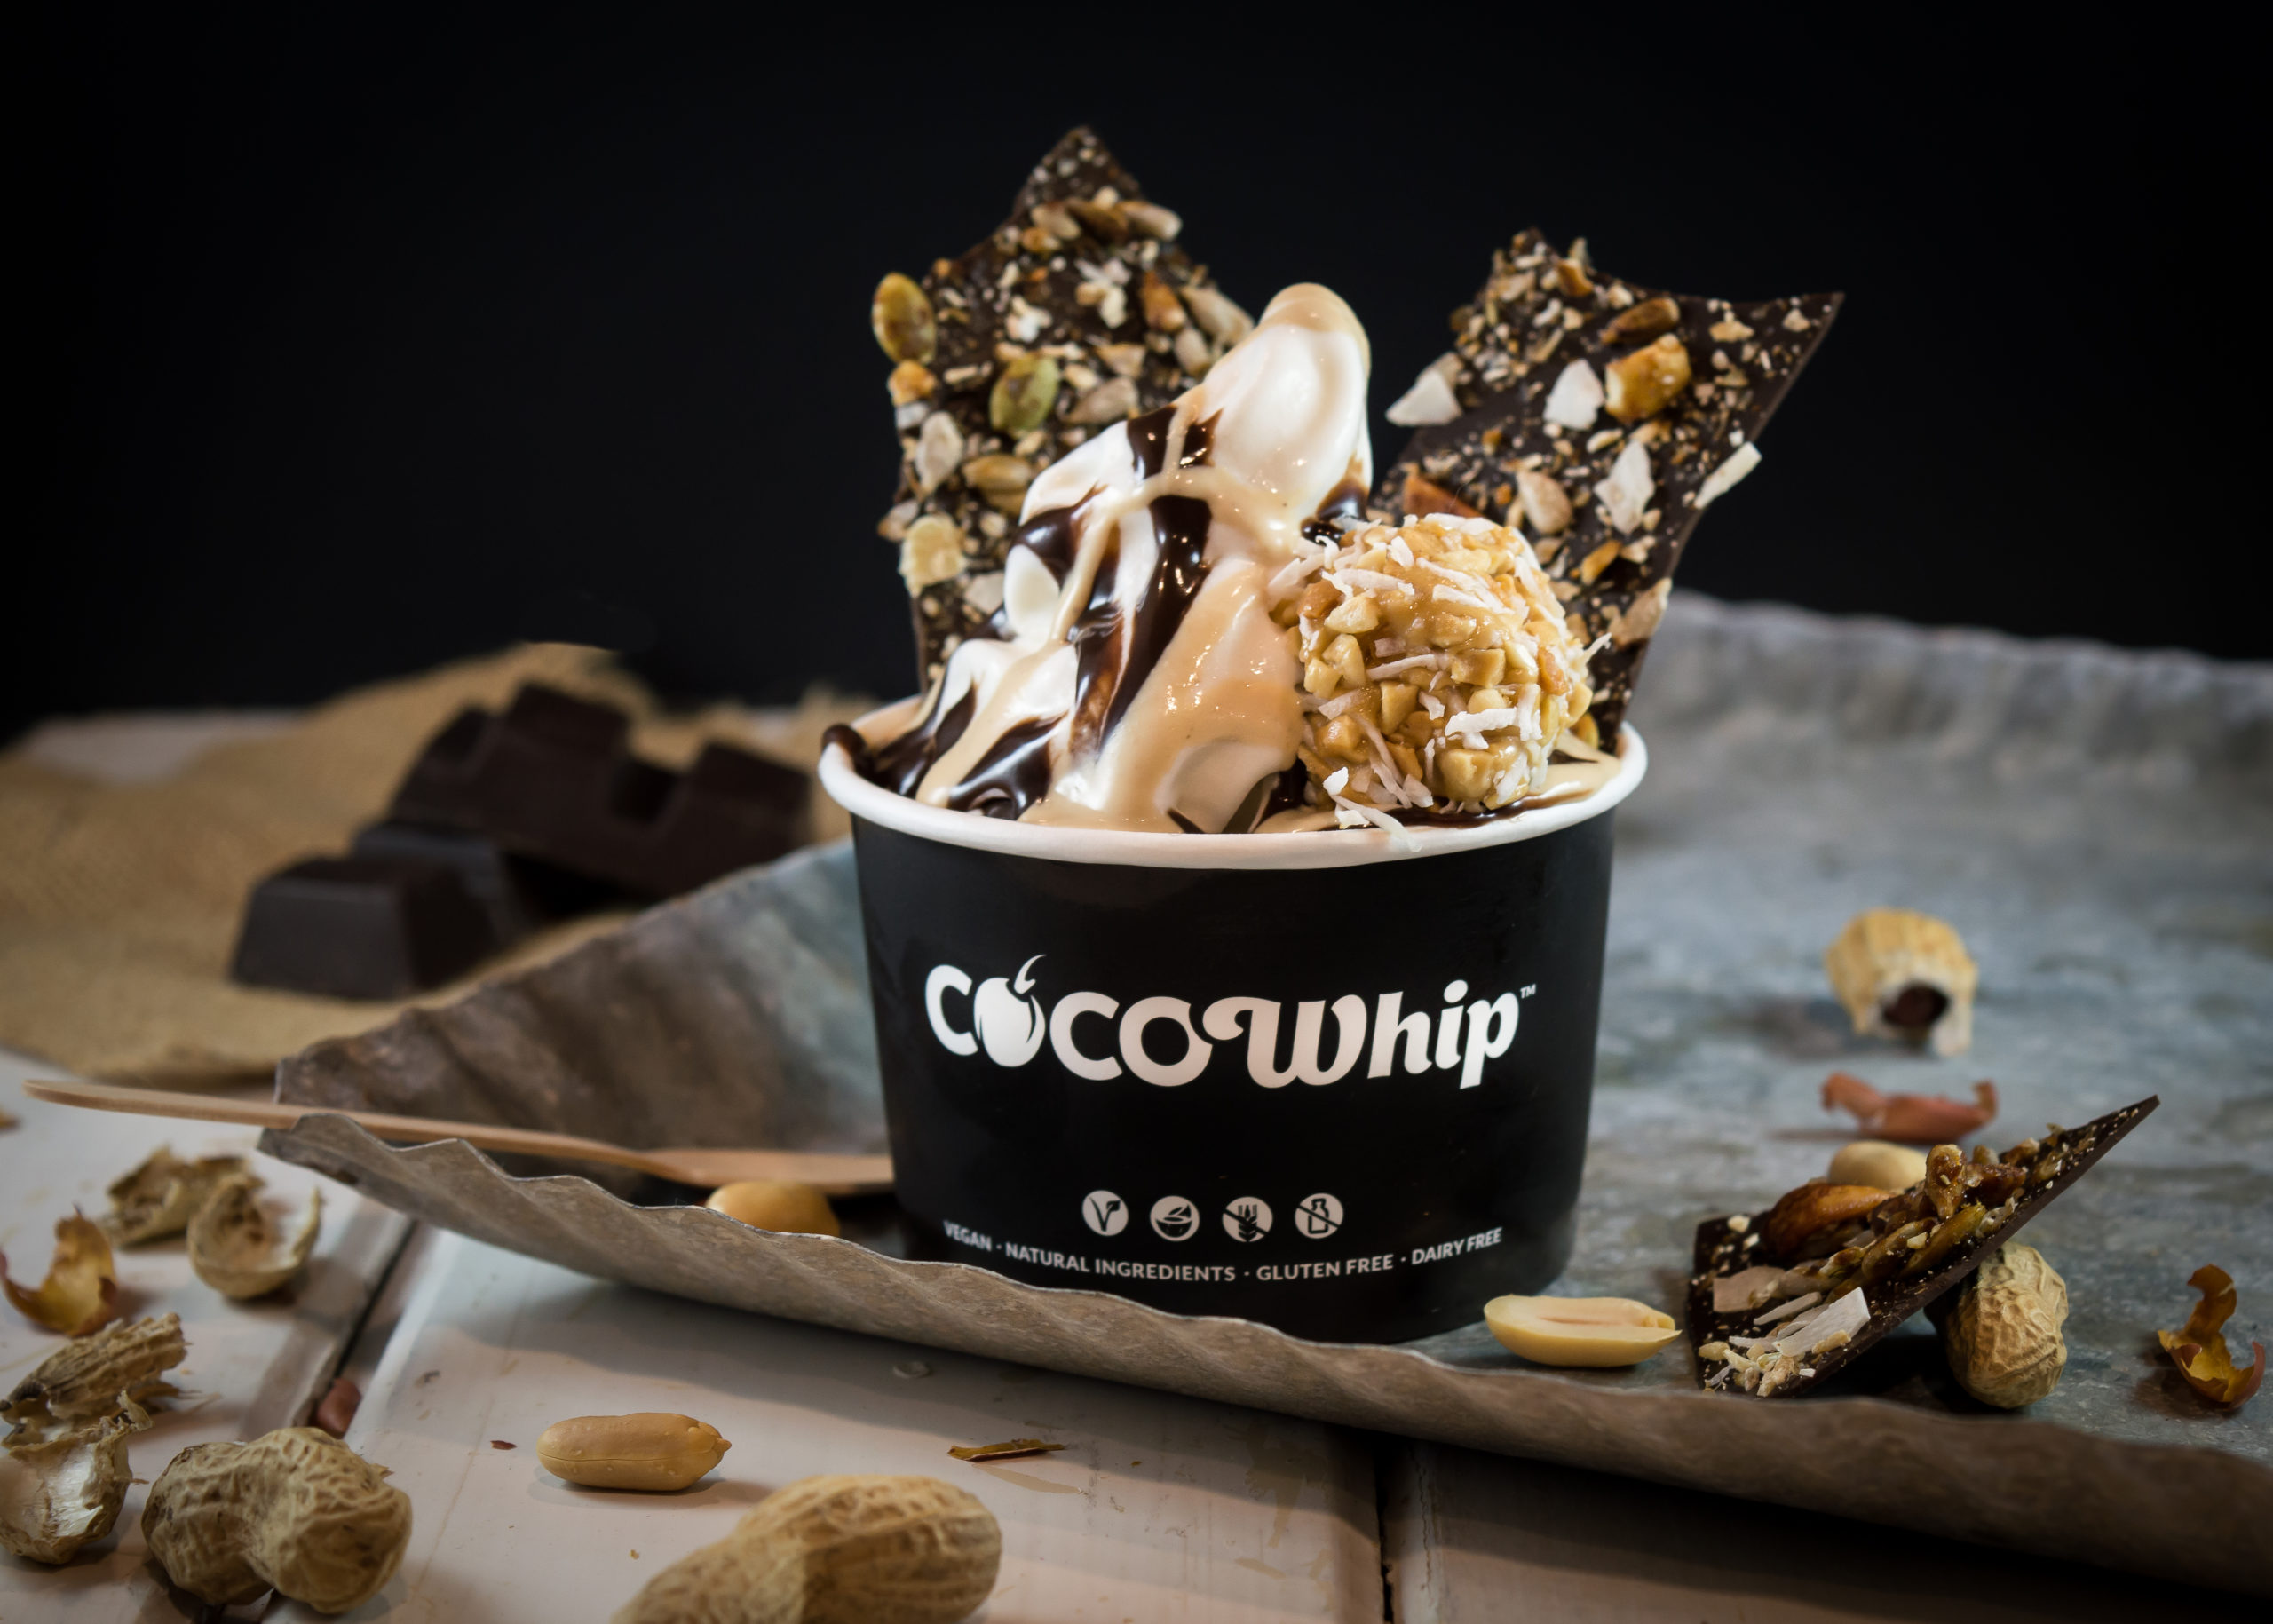 Cocowhip ingredients